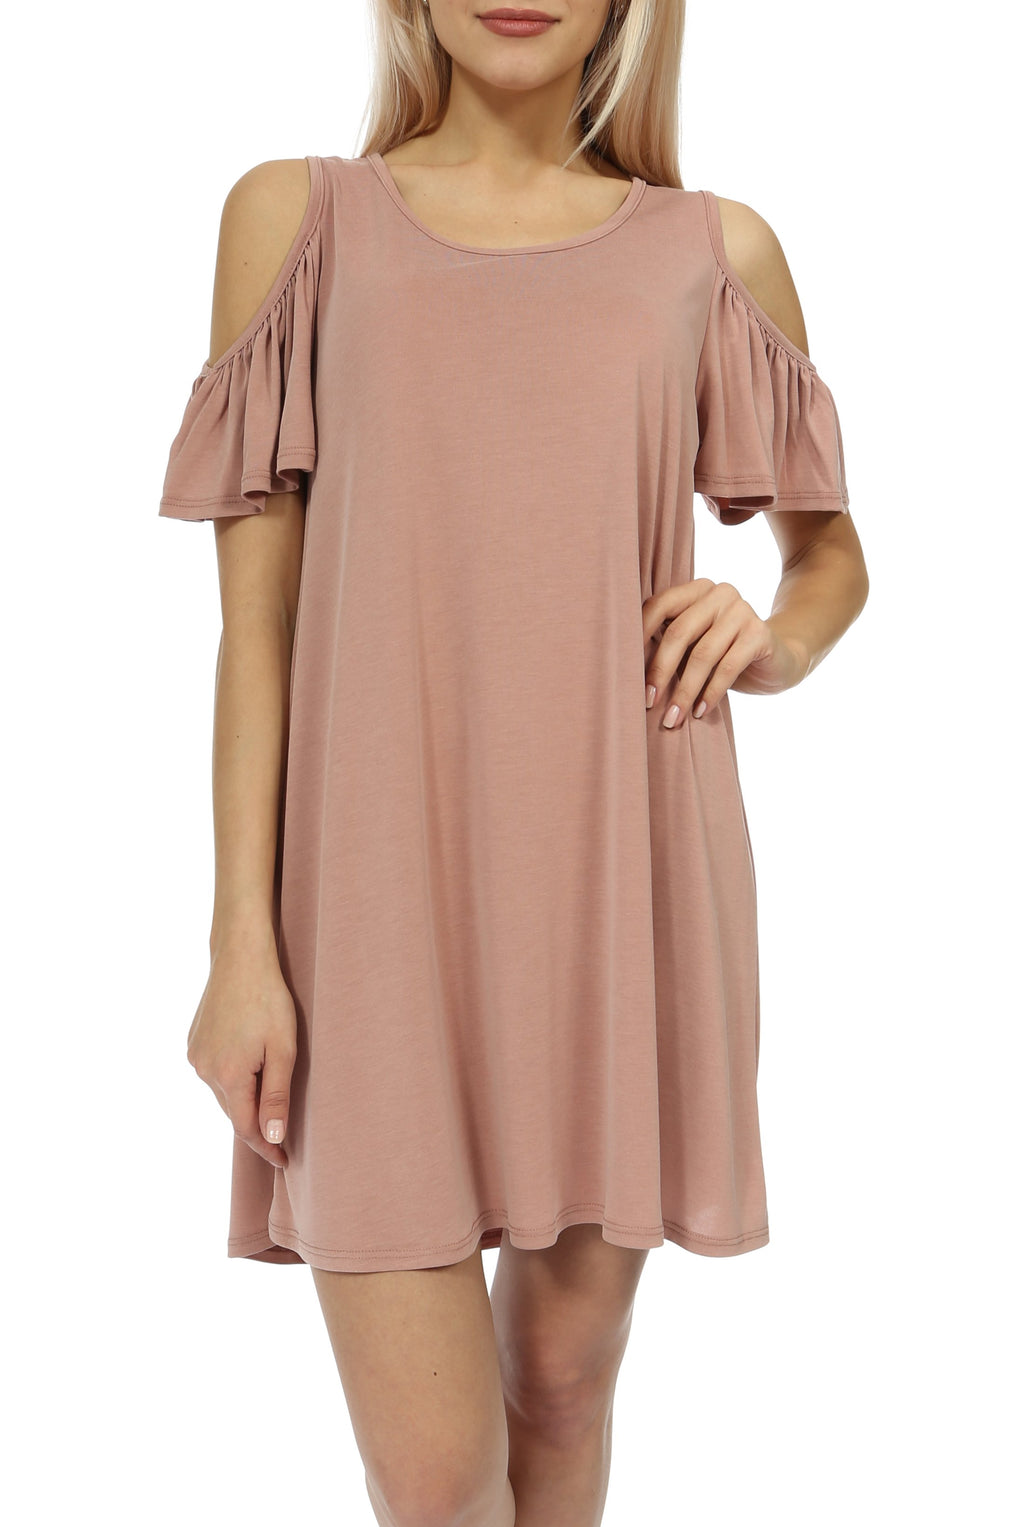 Teeze Me | Short Sleeve Scoop Neck Cold Shoulder Swing T-Shirt Dress | Blush - Teeze Me